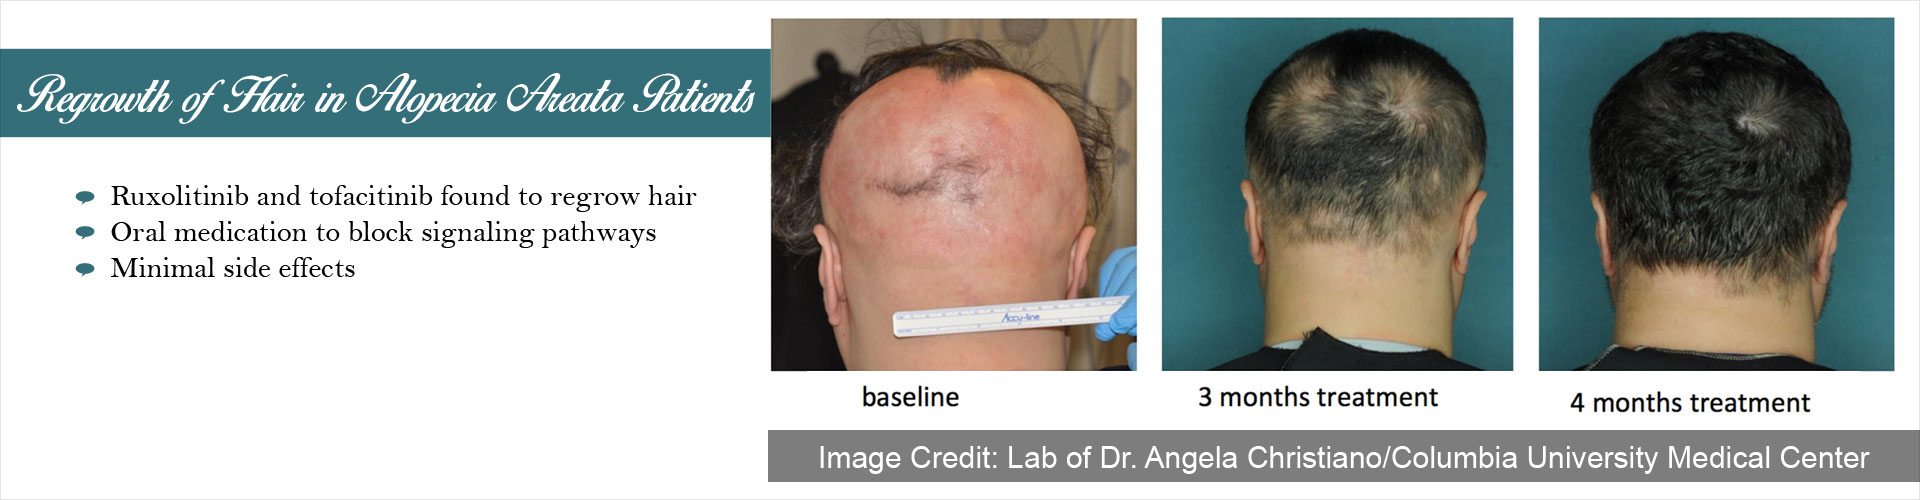 Drug for Alopecia Areata Could Bid Good Bye for Hair Loss and Baldness